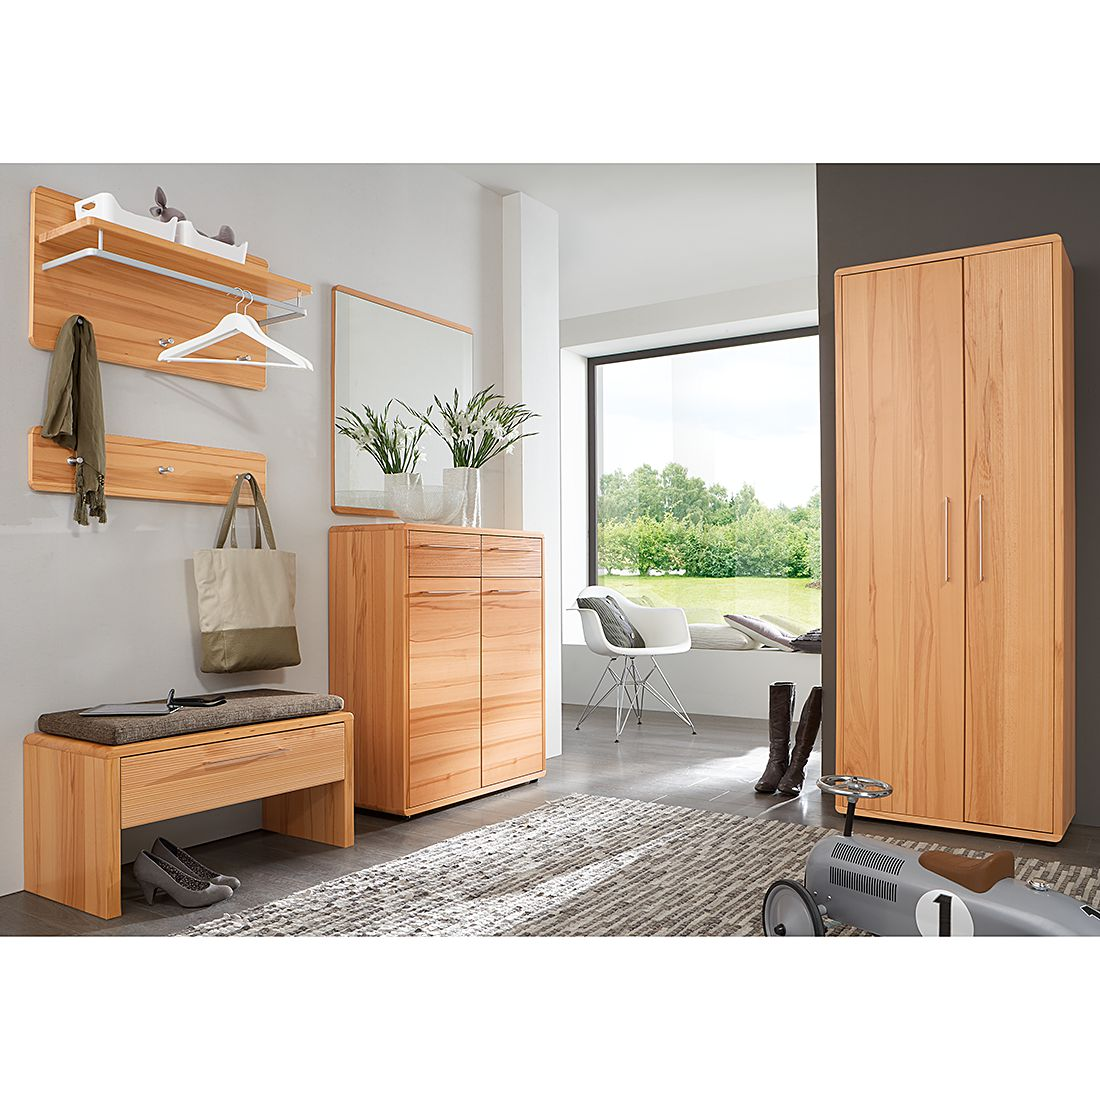 garderobe massivholz preisvergleiche erfahrungsberichte. Black Bedroom Furniture Sets. Home Design Ideas